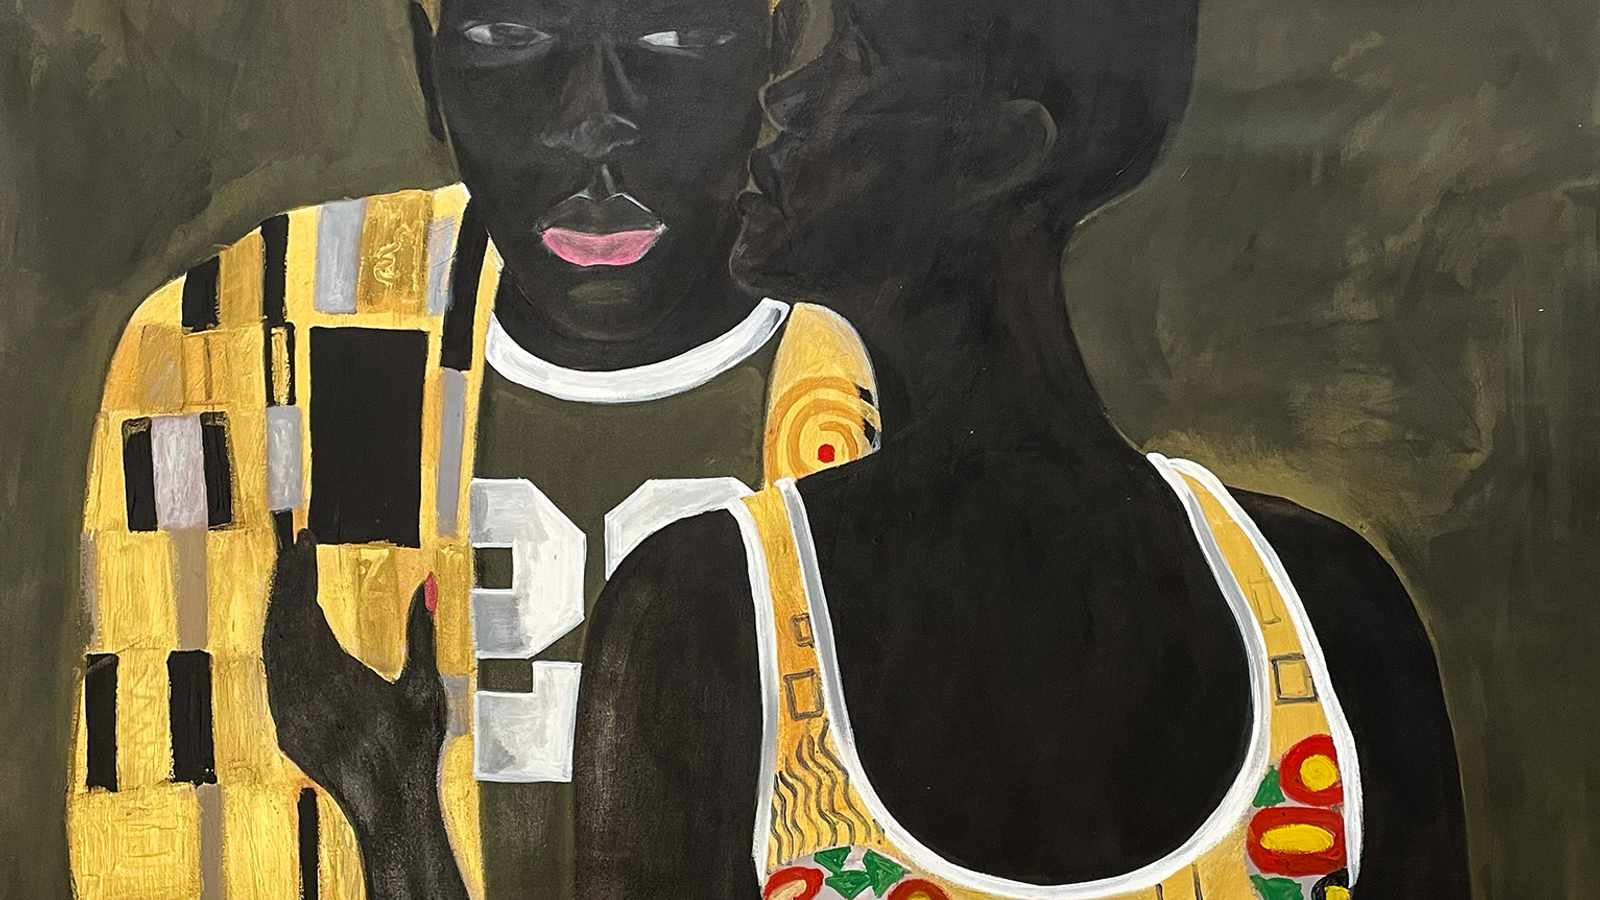 Rising artists John Madu & Ousmane Niang are Figures of Power